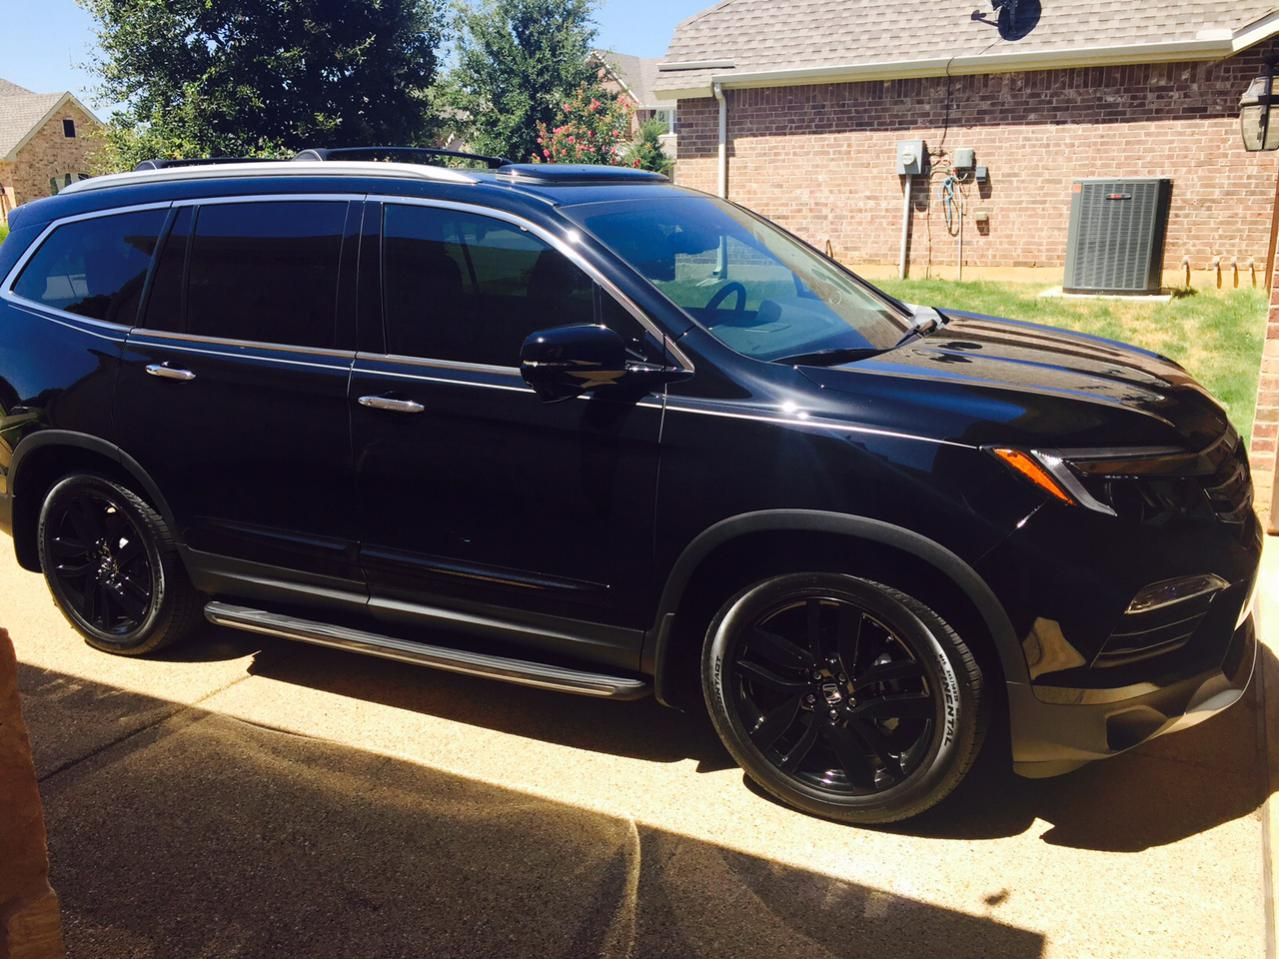 Honda Pilot Accessories >> Pictures With Accessories Or Modifications Honda Pilot